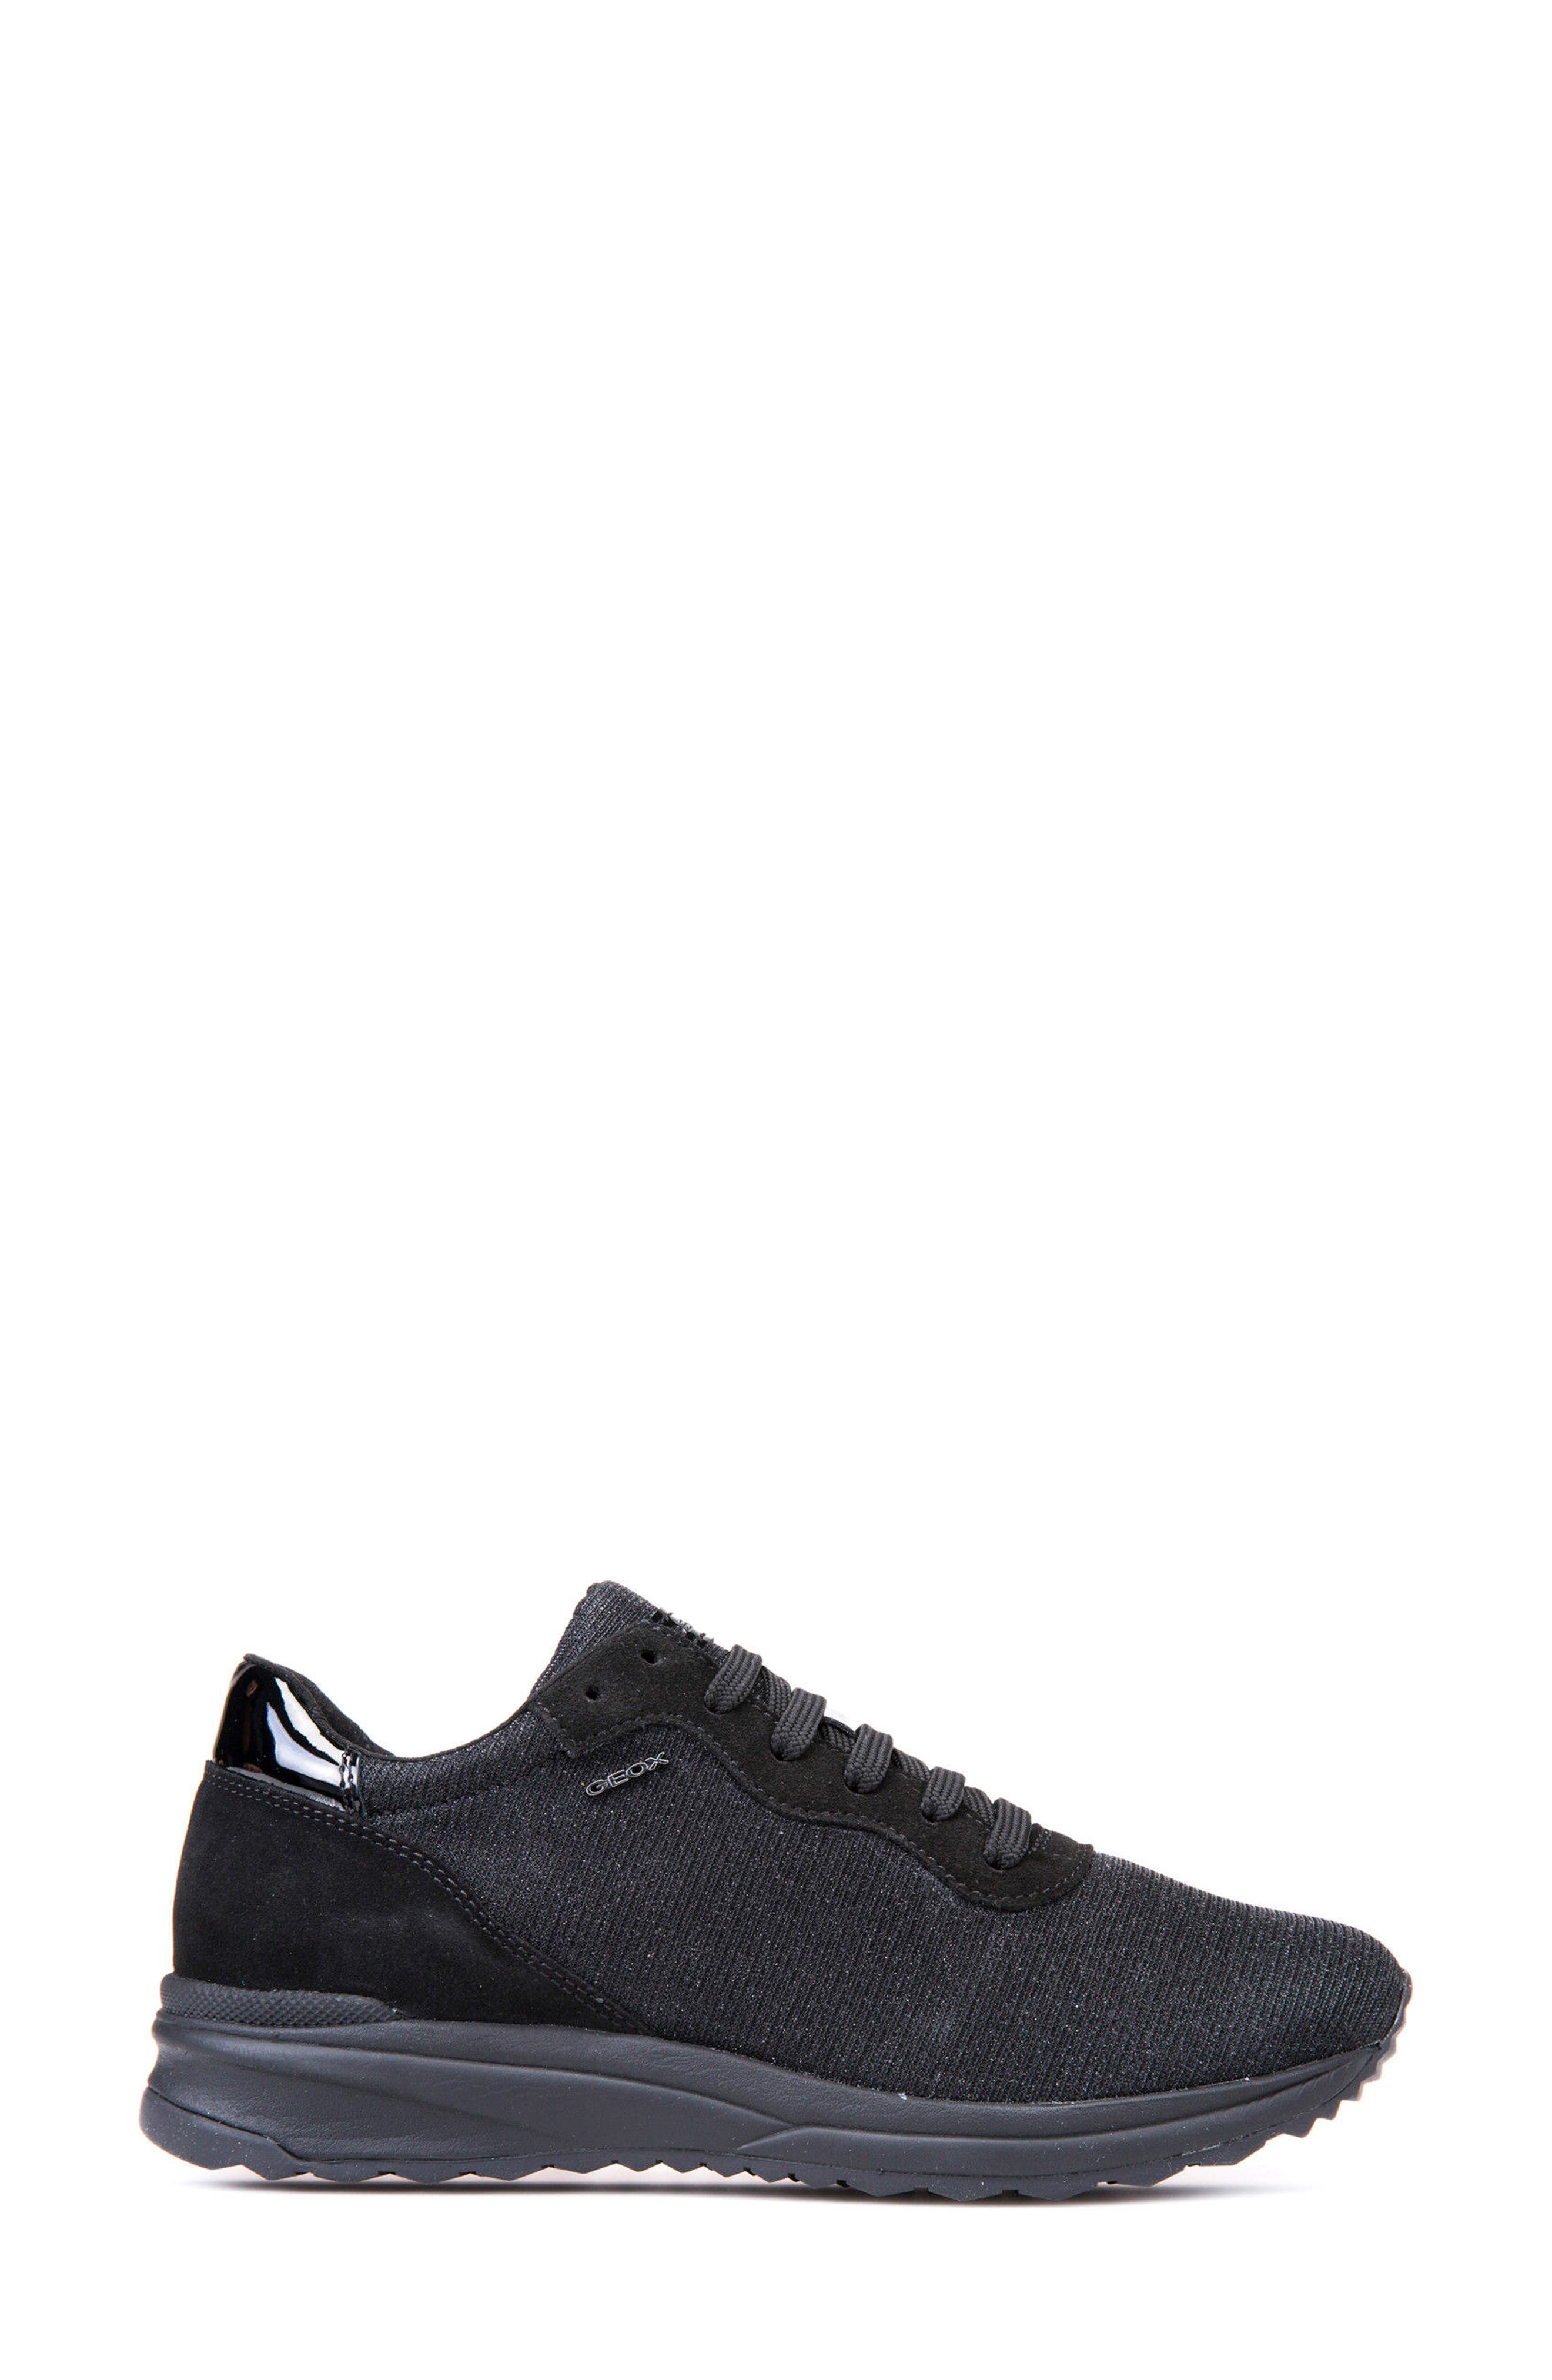 Airell Sneaker,                             Alternate thumbnail 3, color,                             001